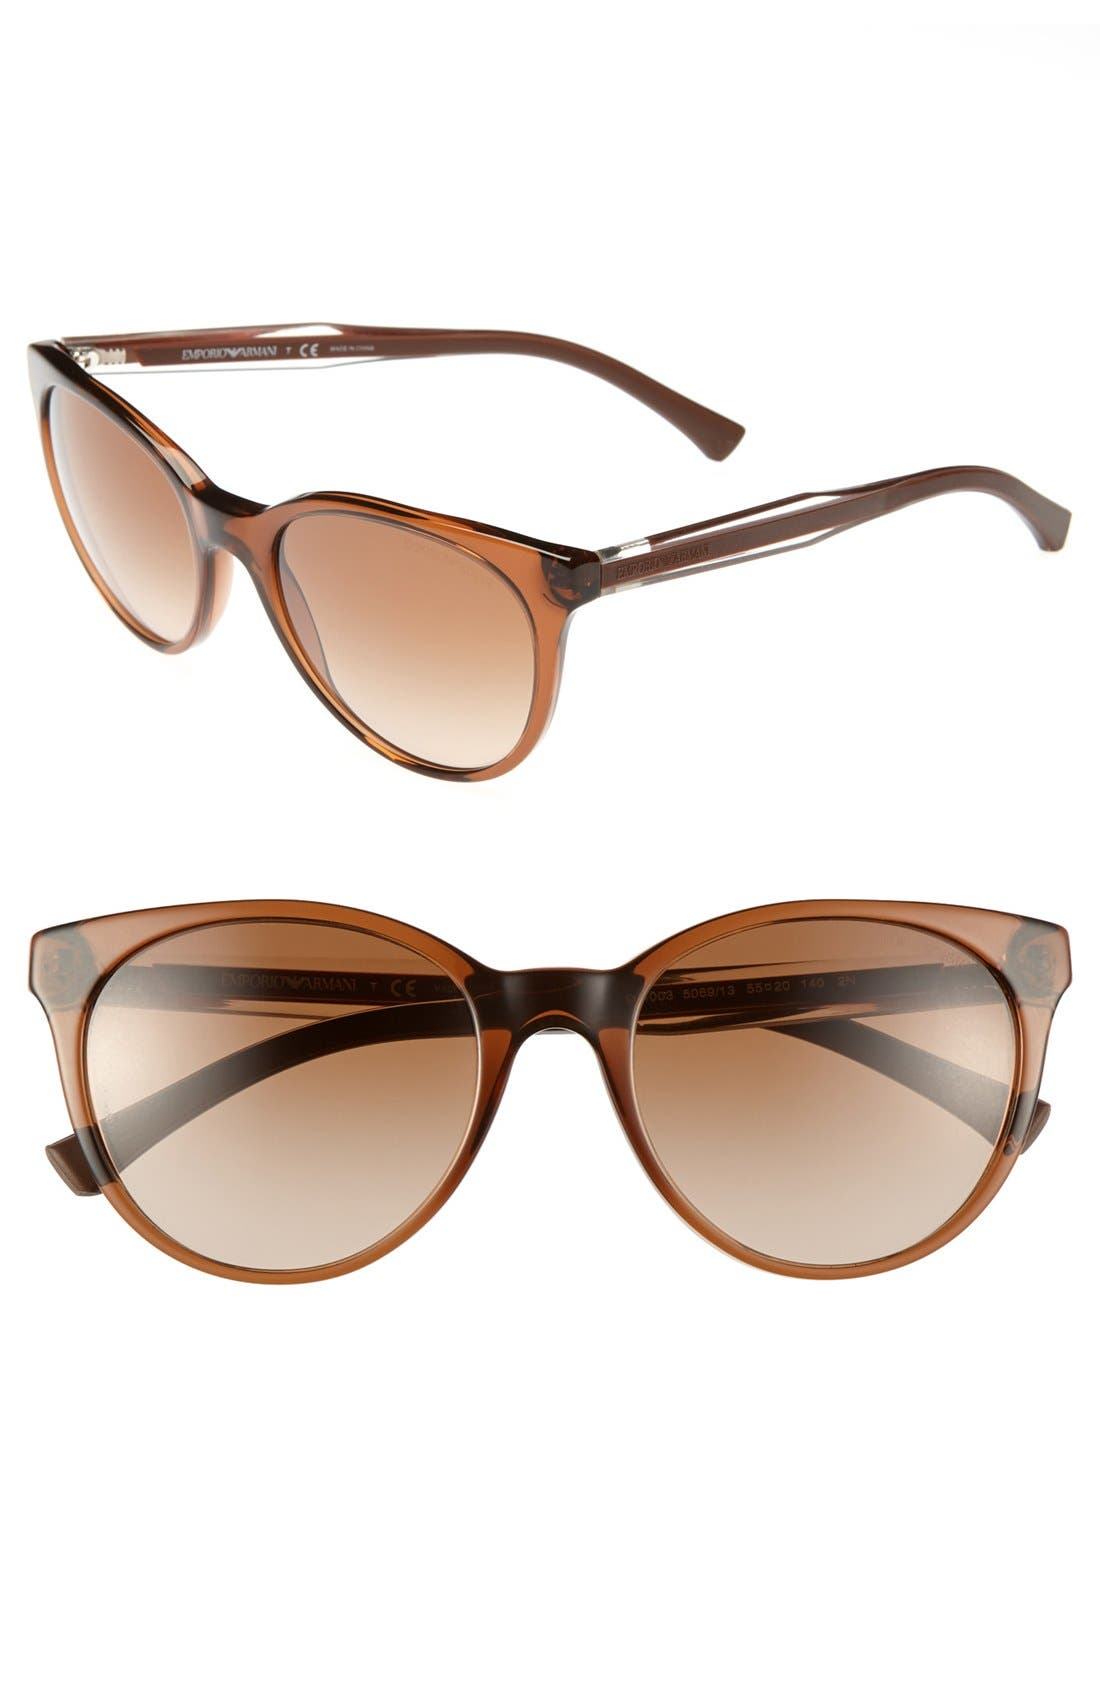 Alternate Image 1 Selected - Emporio Armani 55mm Sunglasses